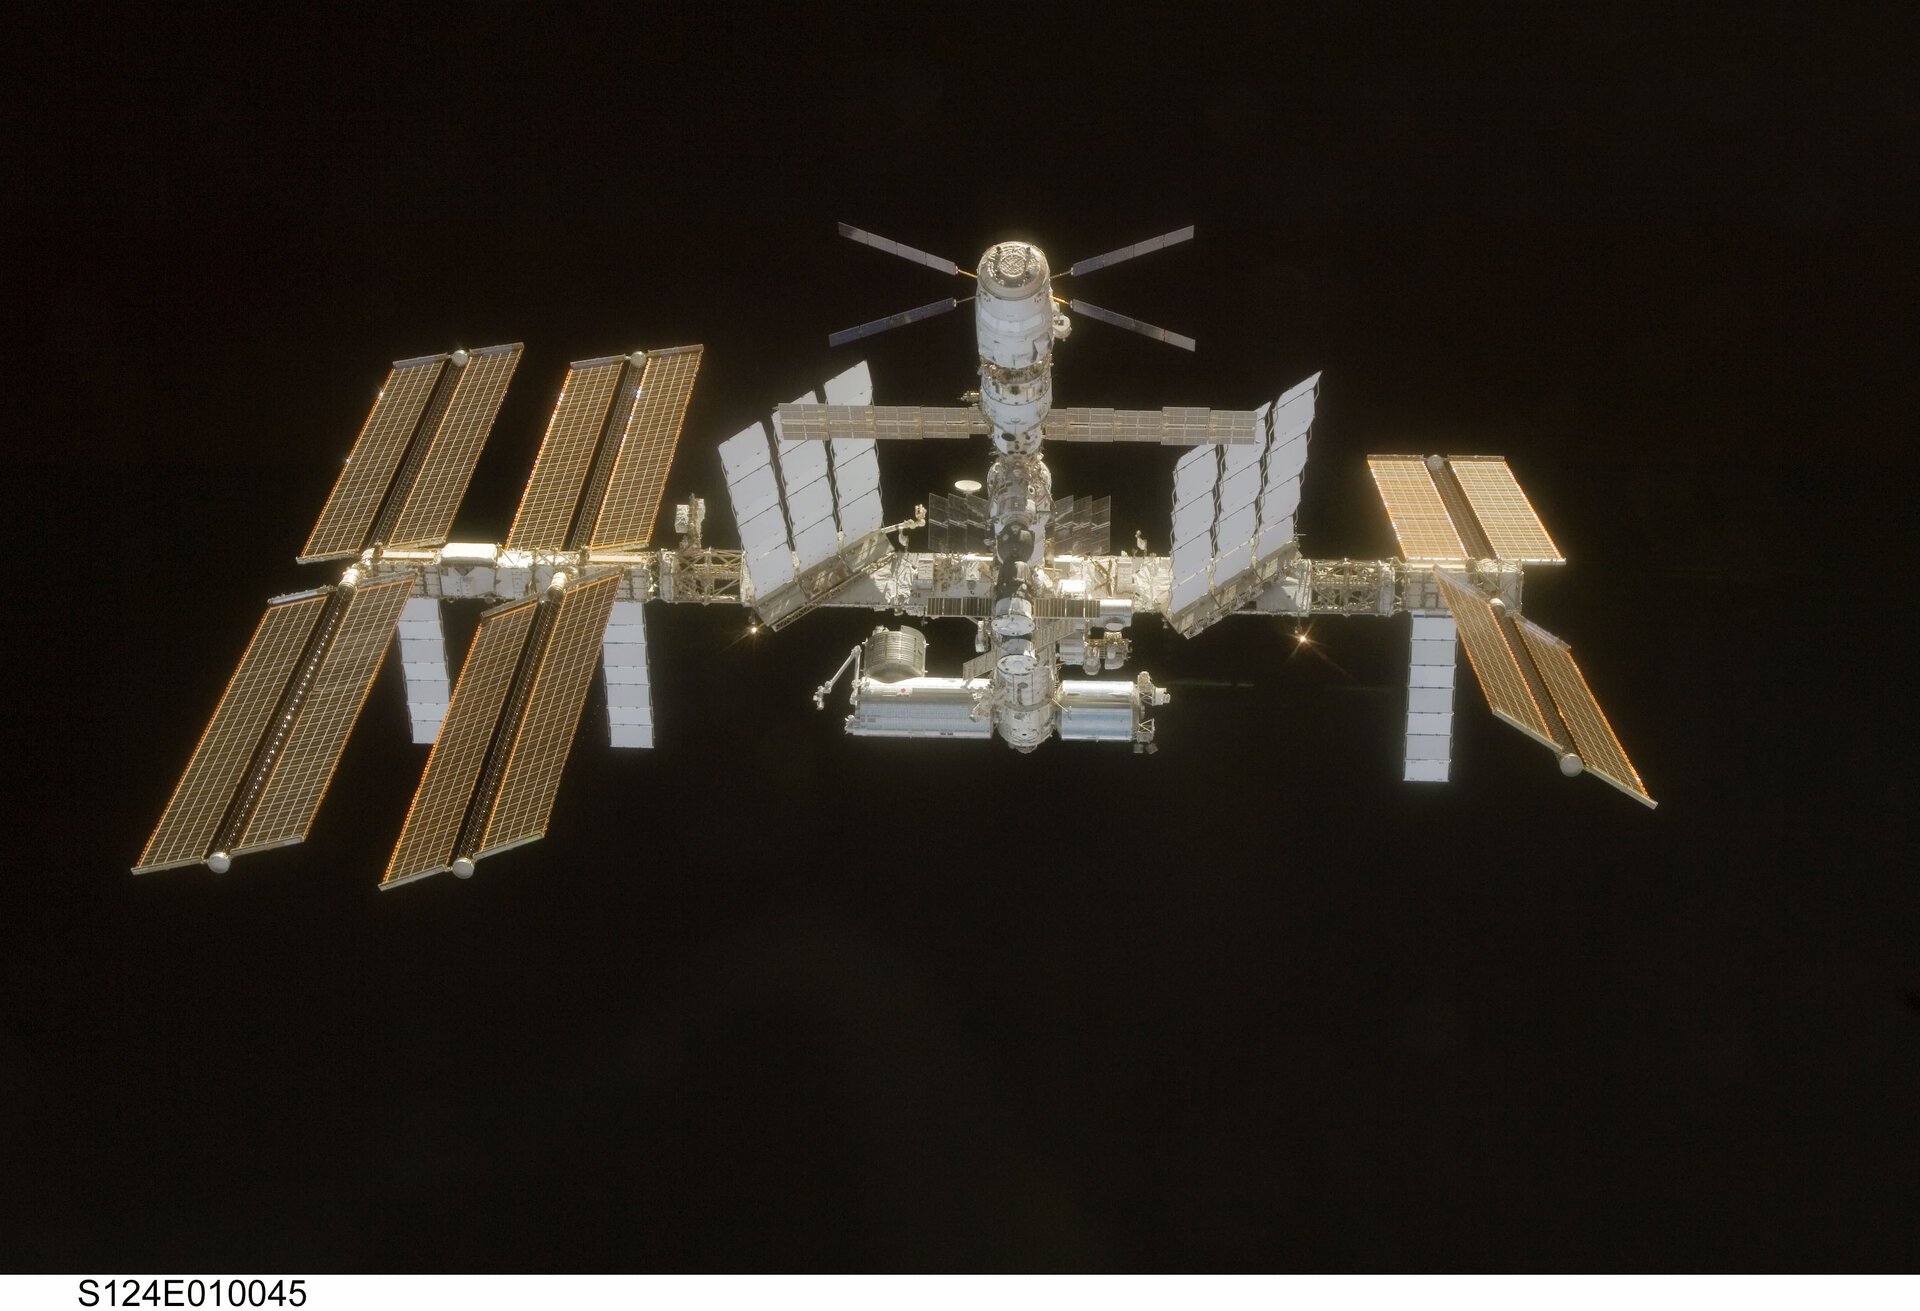 ATV is seen top-centre in this recent photo of the International Space Station